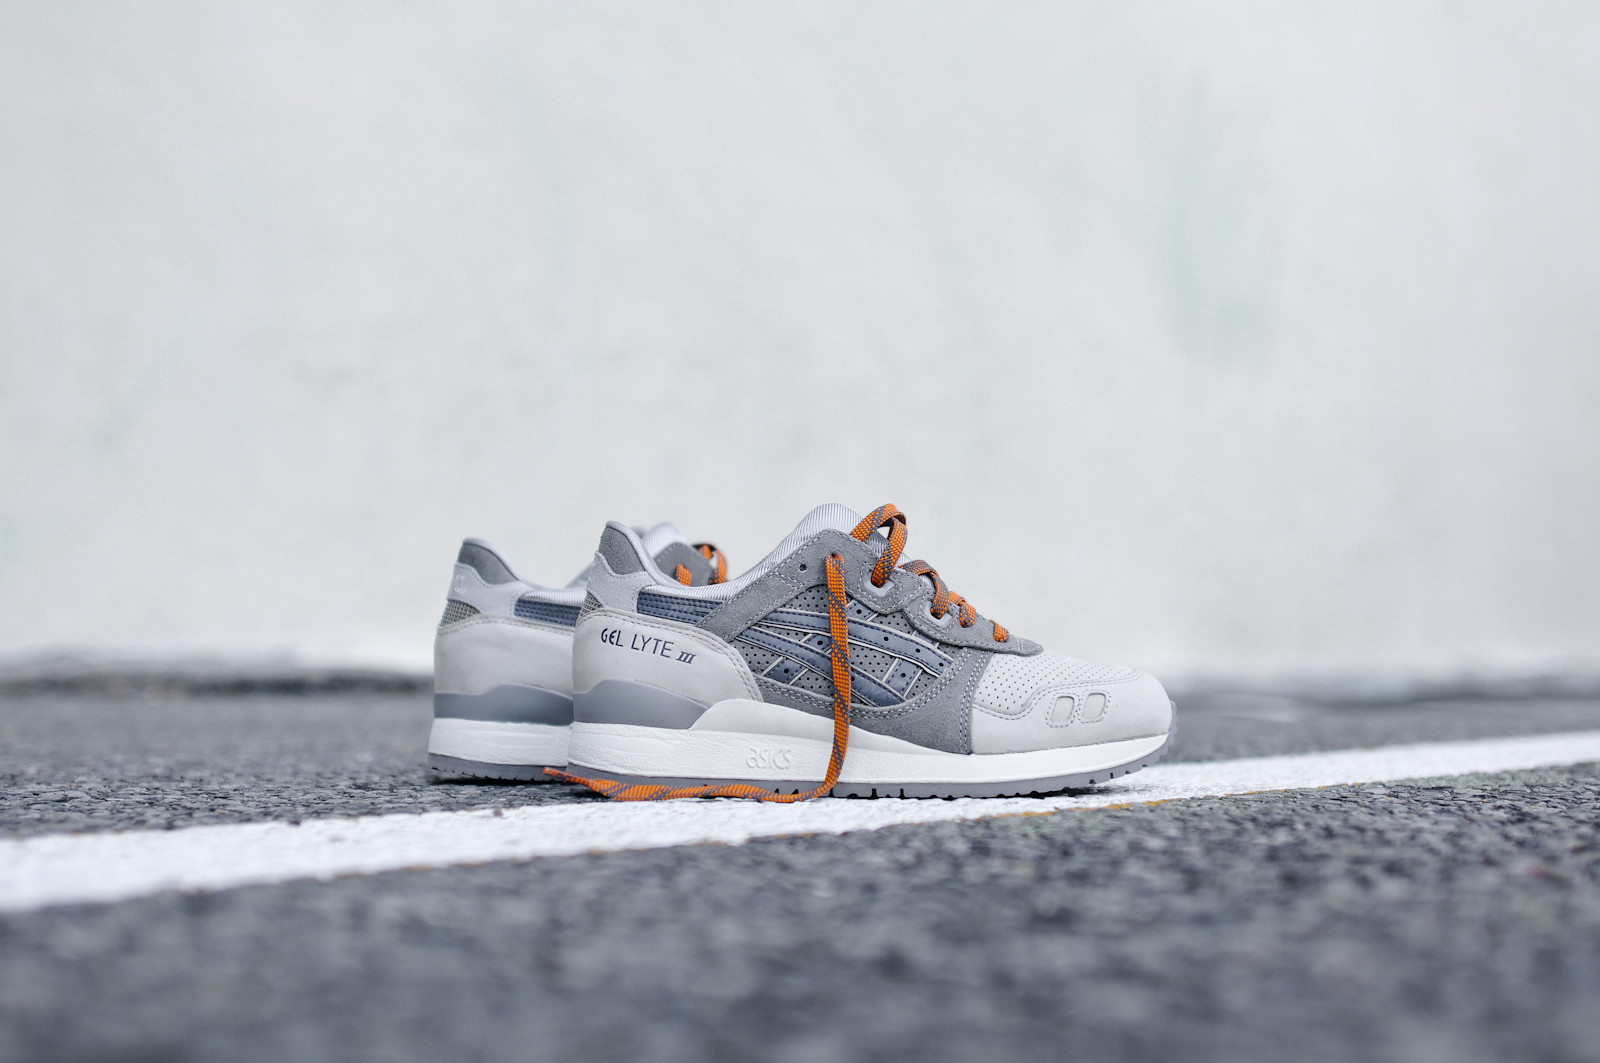 An Additional Look at the Asics Gel